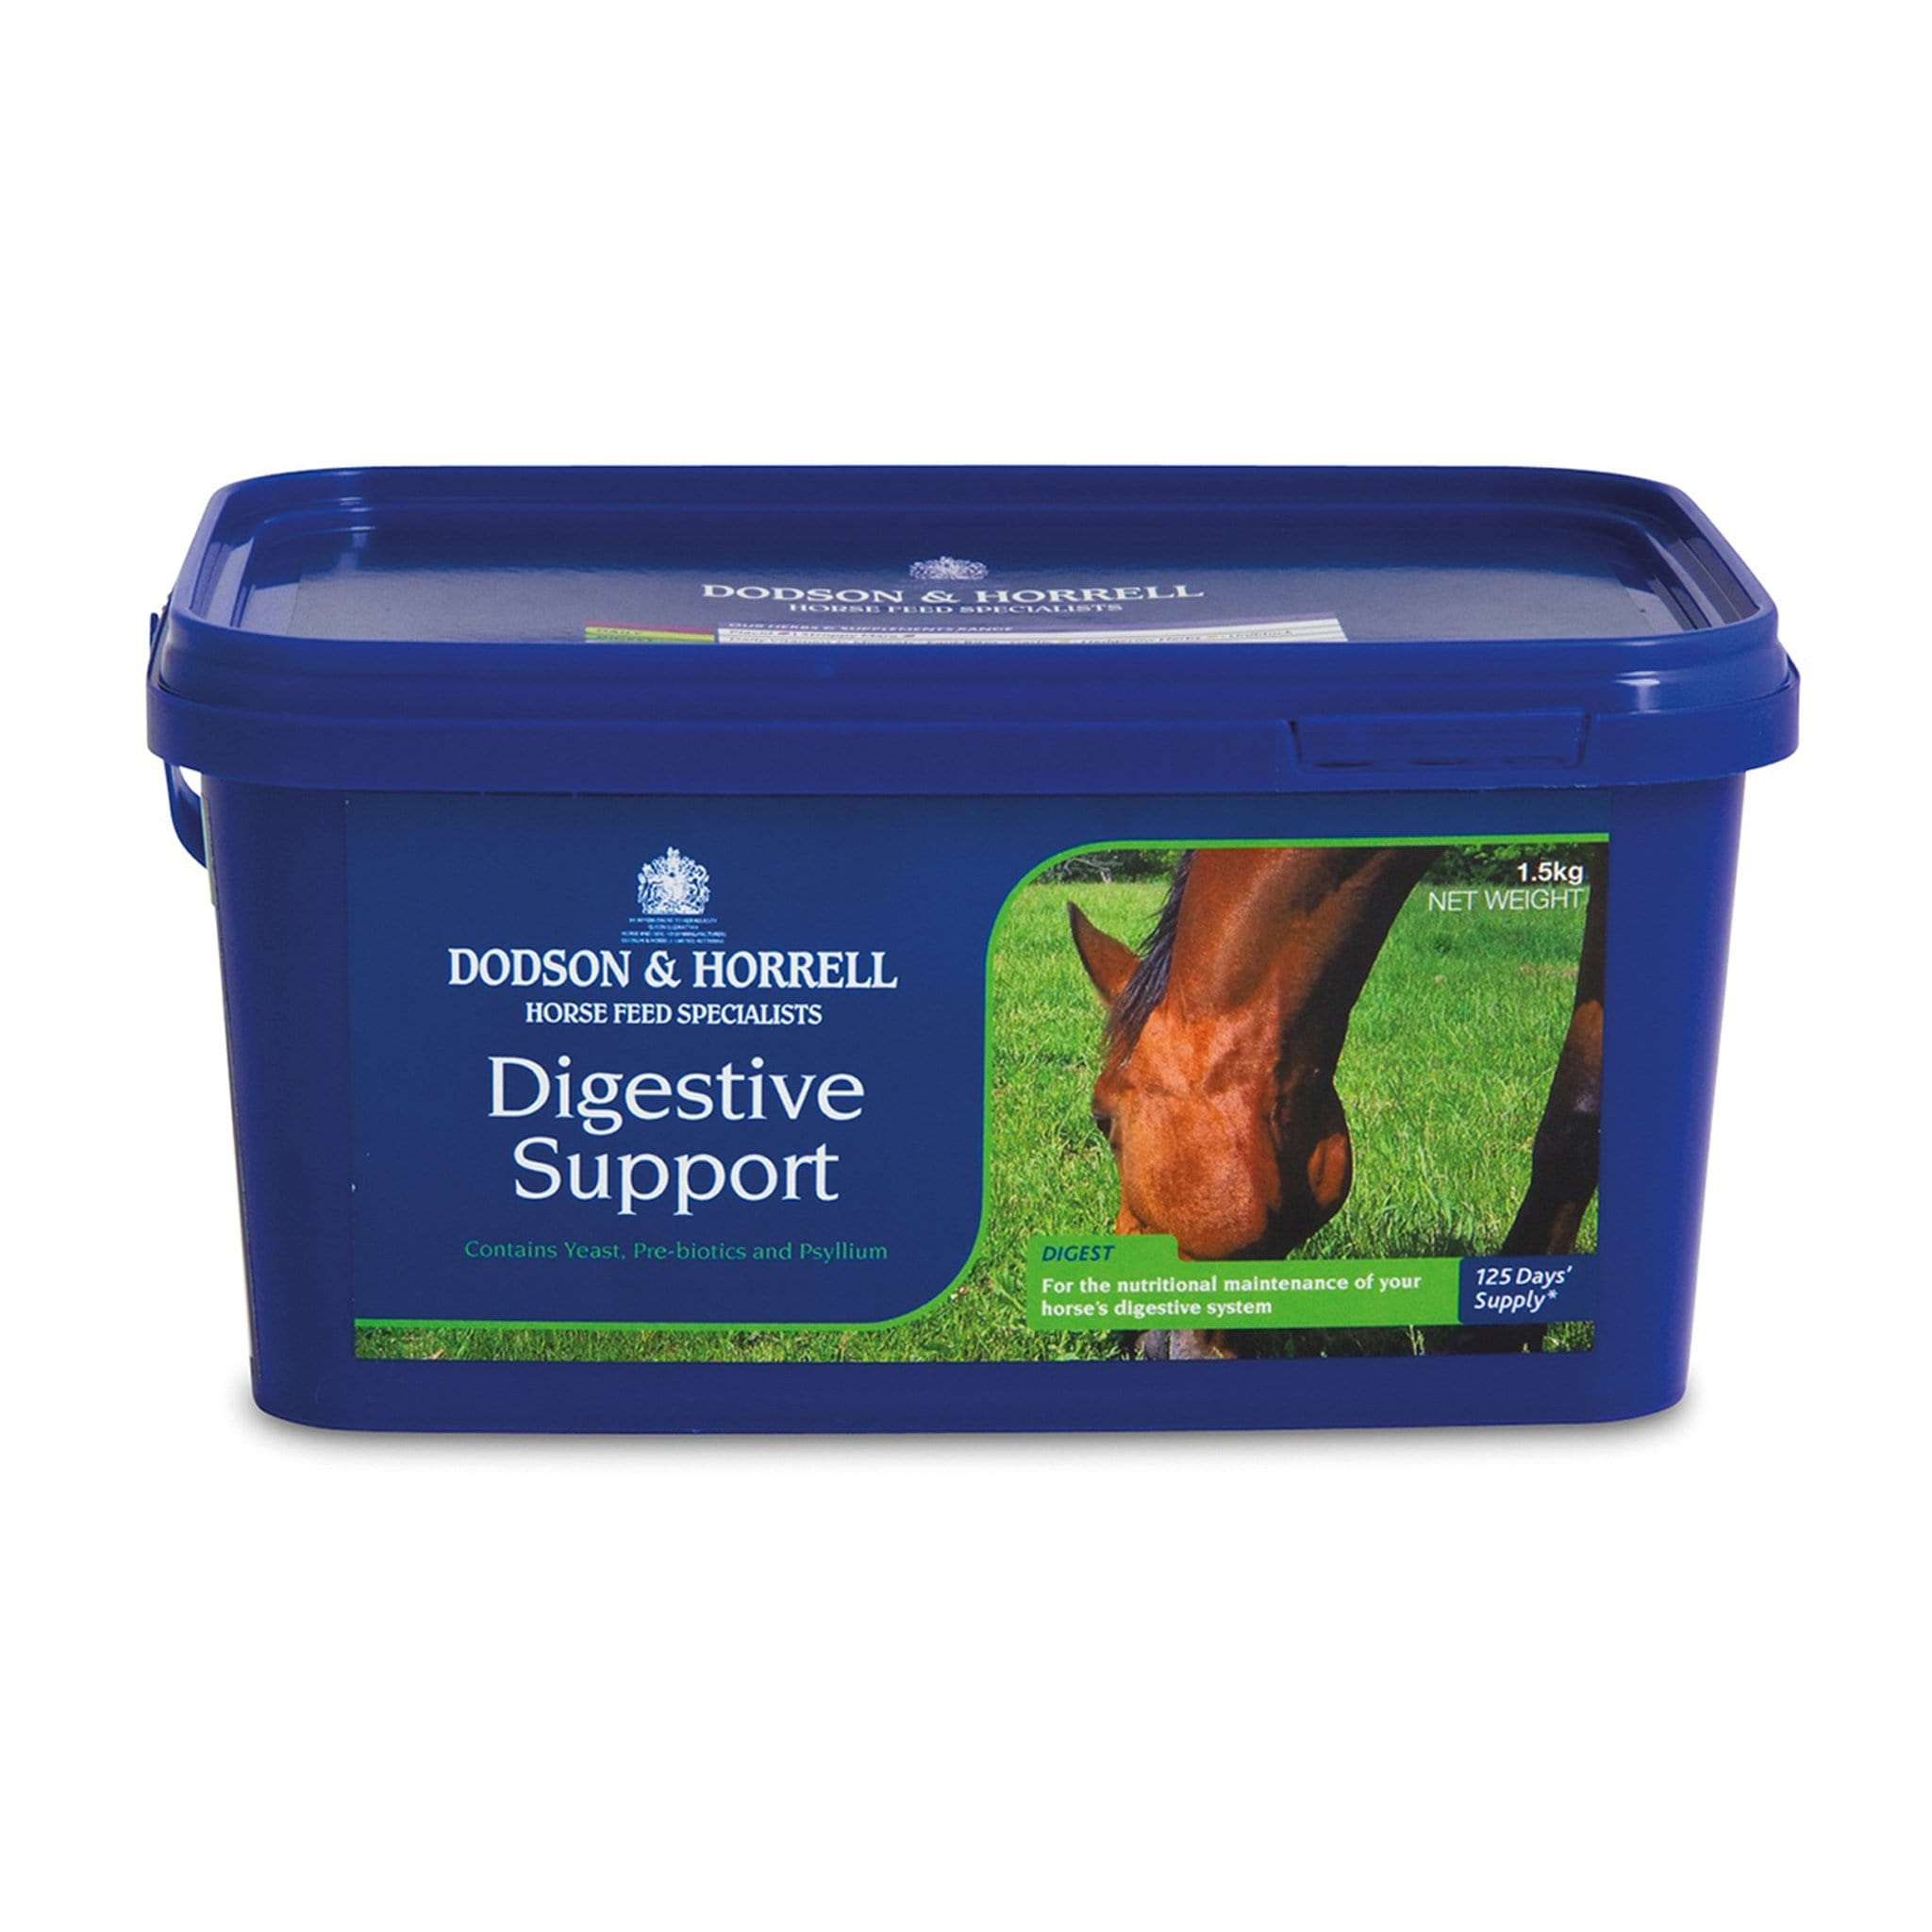 Dodson and Horrell Digestive Support 1.5KG DHL1075.